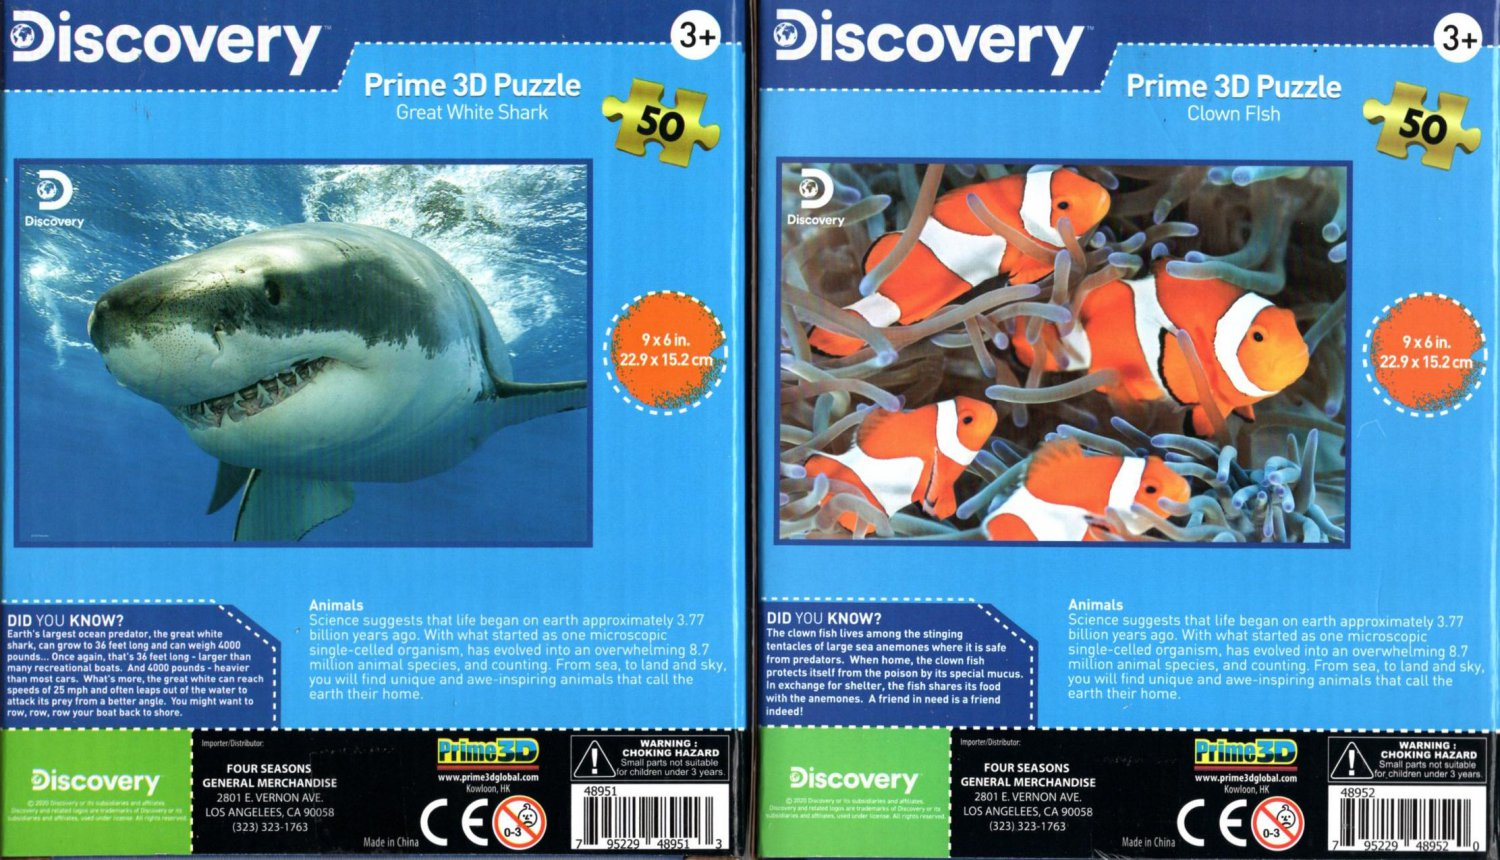 Discovery -  Prime 3D 50 Pieces Jigsaw Puzzle (Set of 2) v4